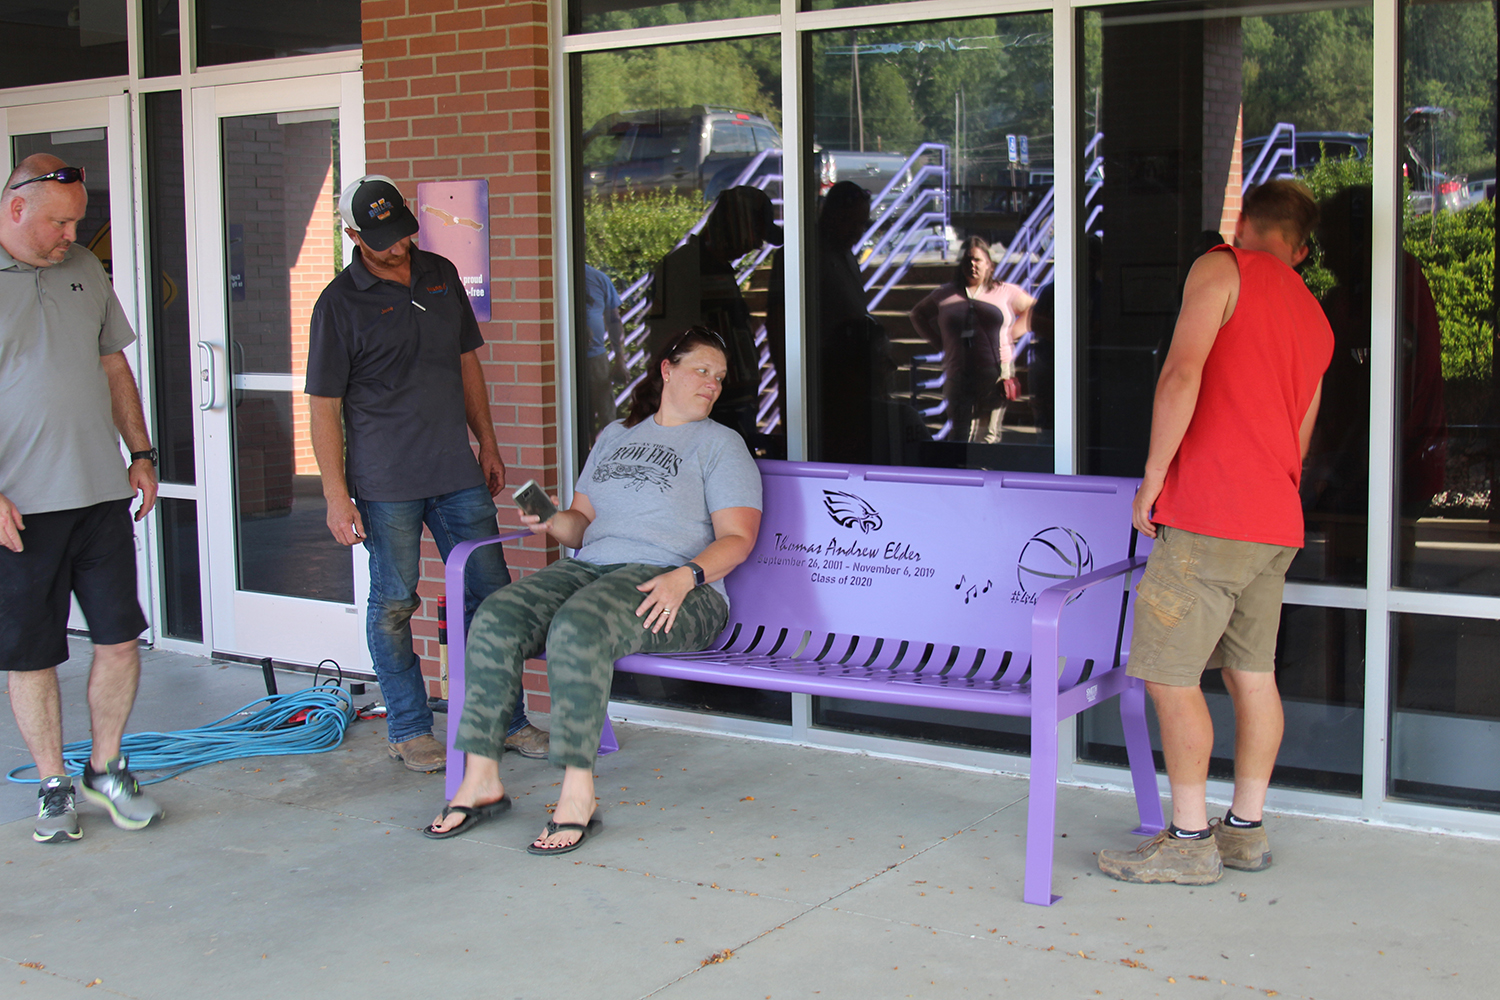 Bench placed at school as reminder of Elder